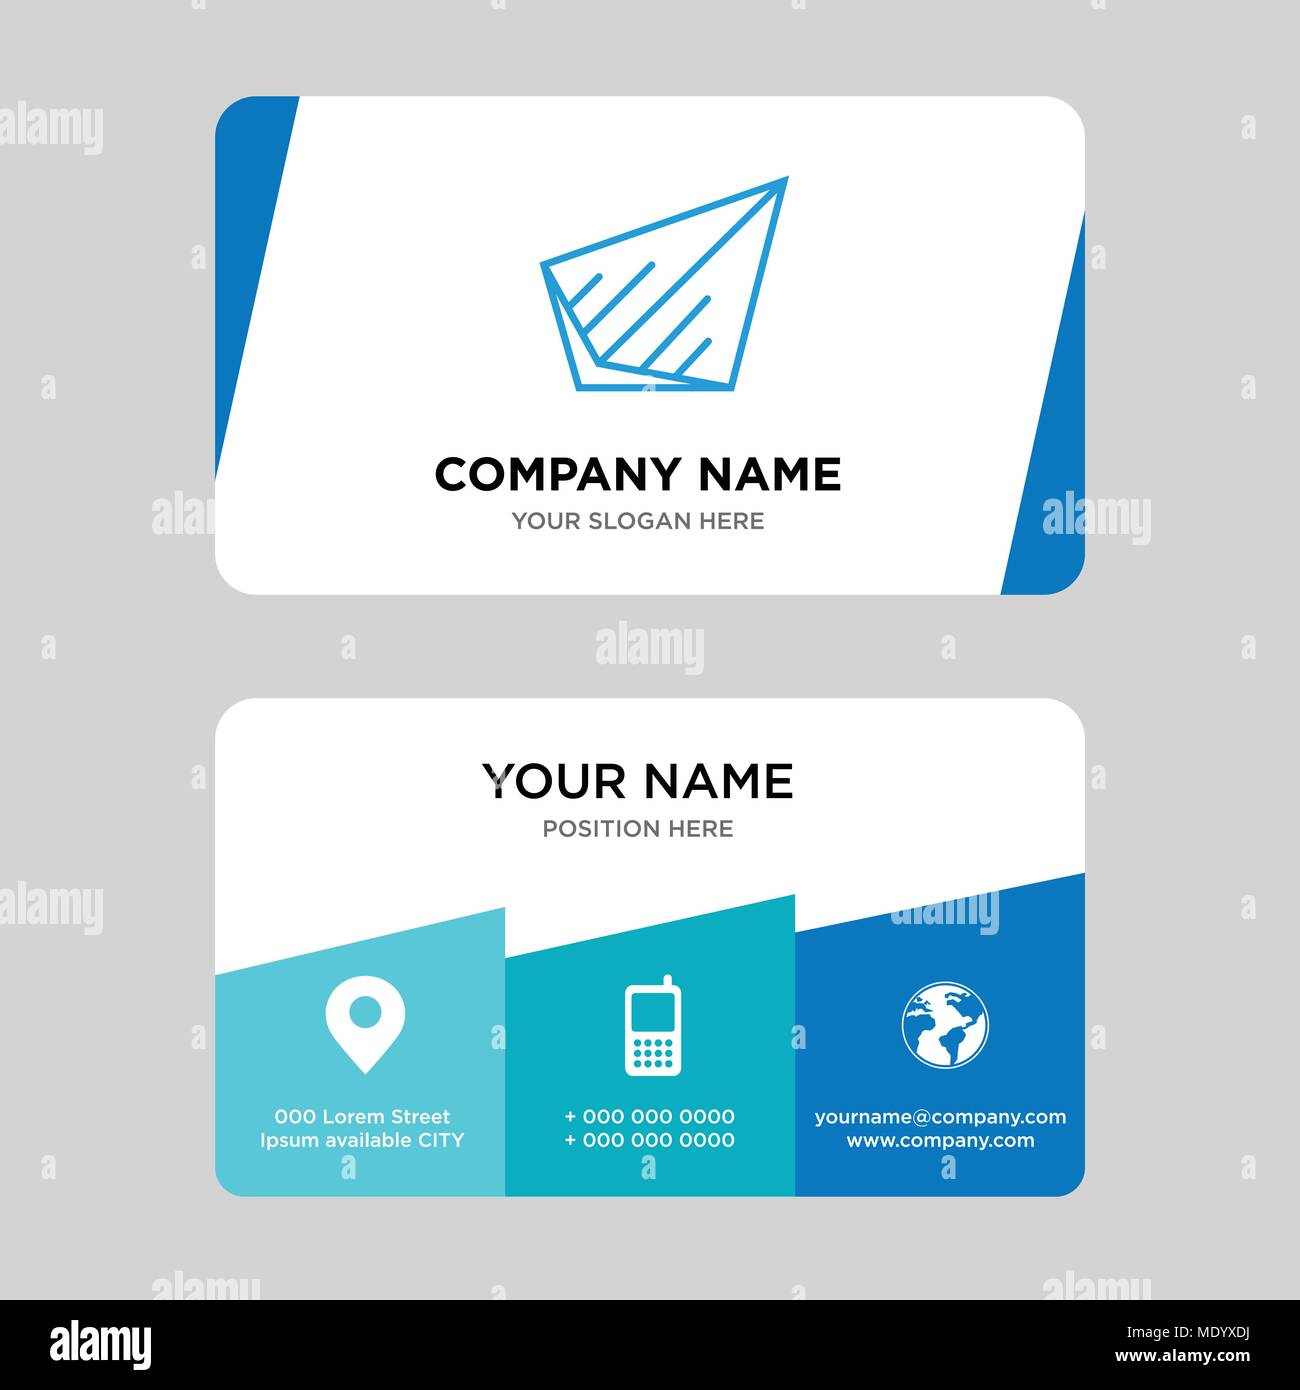 Send business card design template, Visiting for your company ...